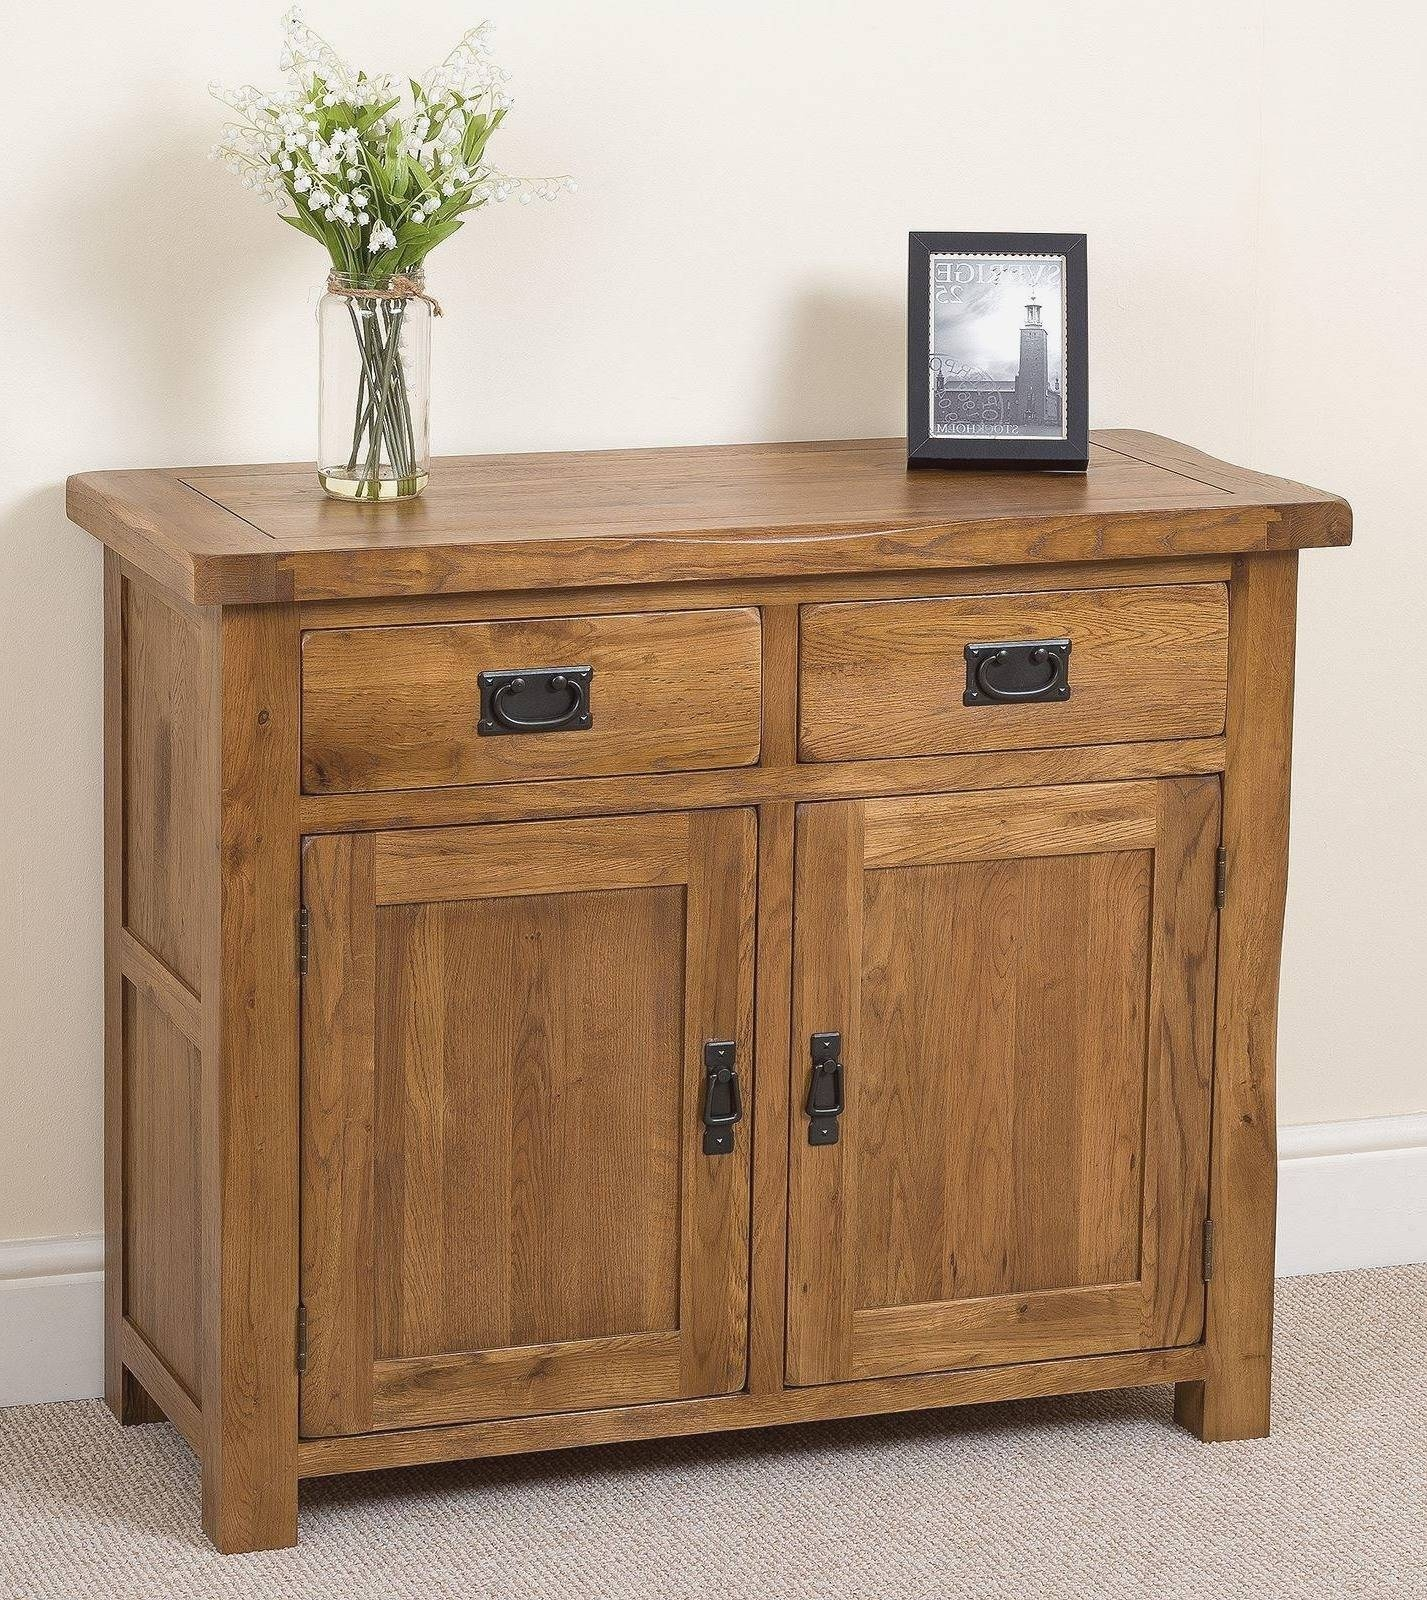 Rustic Sideboards And Buffets | Rembun.co with Rustic Sideboards (Image 19 of 30)